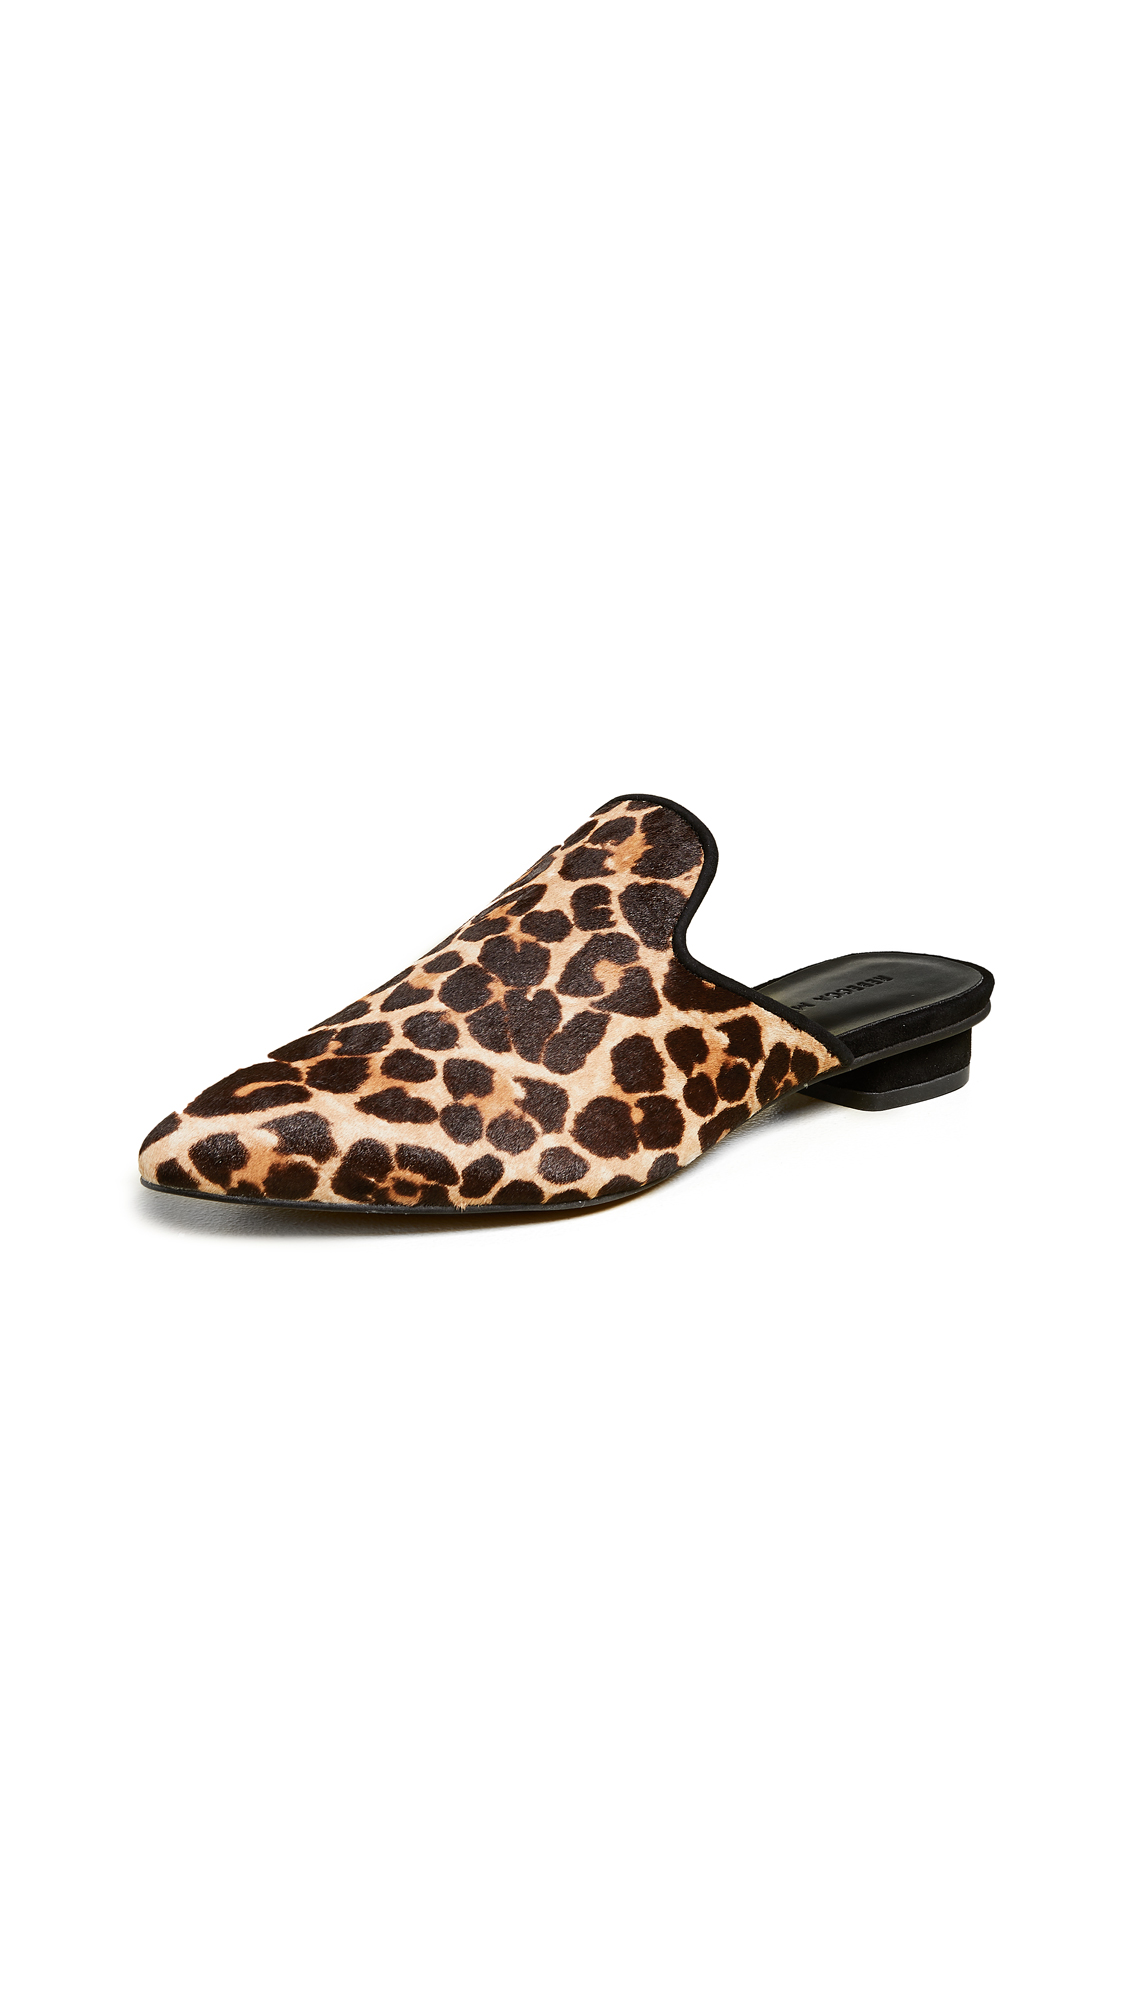 Rebecca Minkoff Chamille Too Point Toe Mules - Leopard